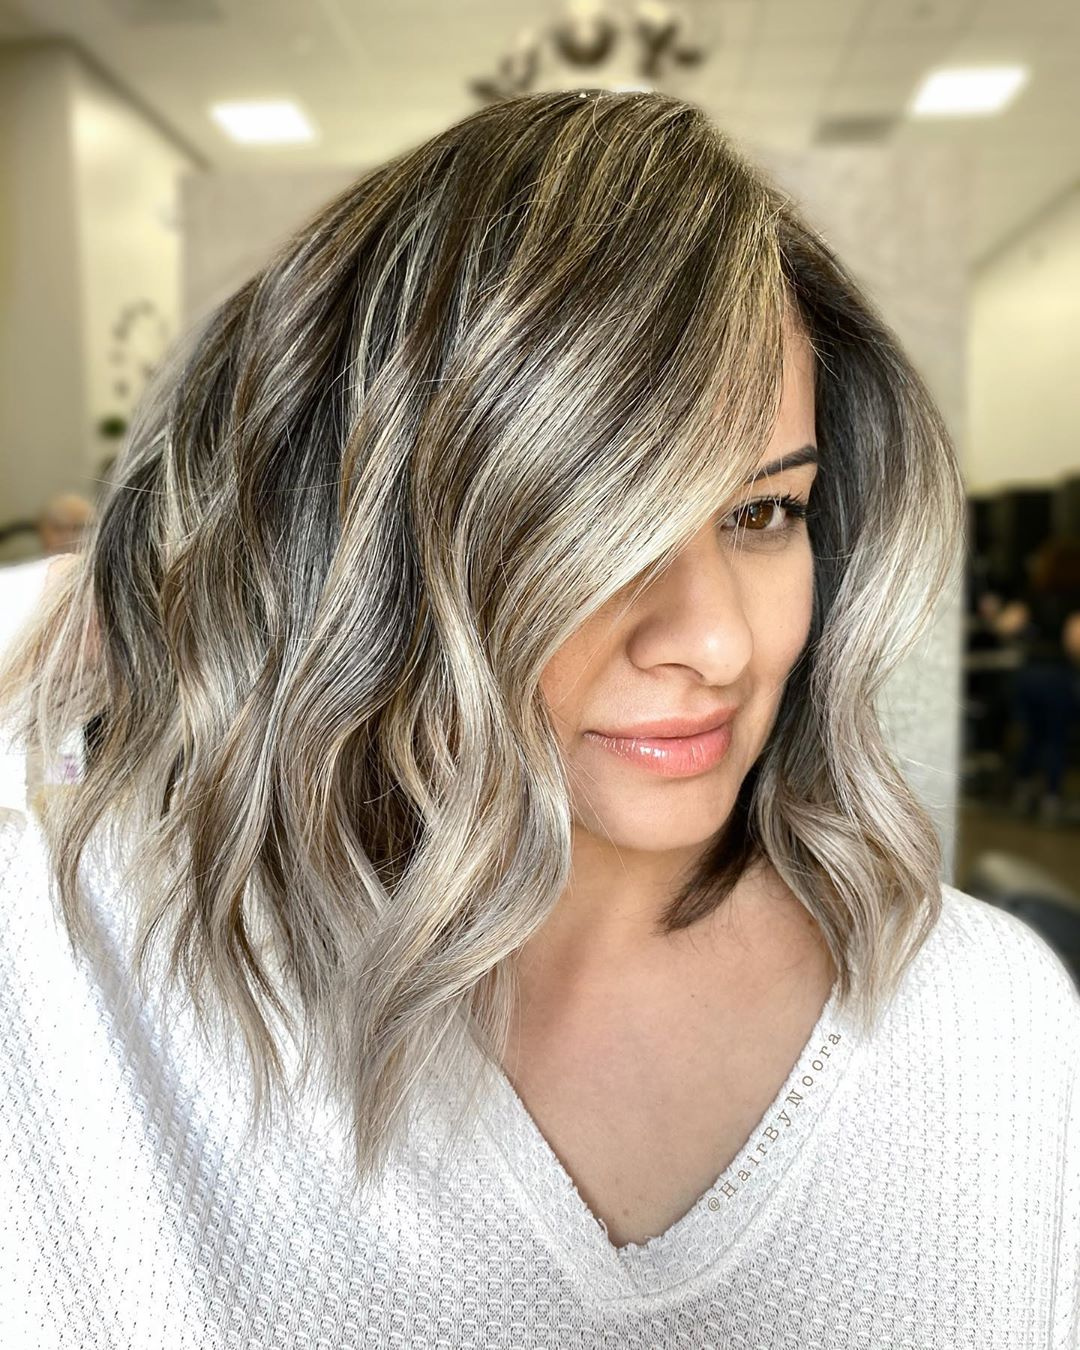 Silver Foilyage for Brown Hair